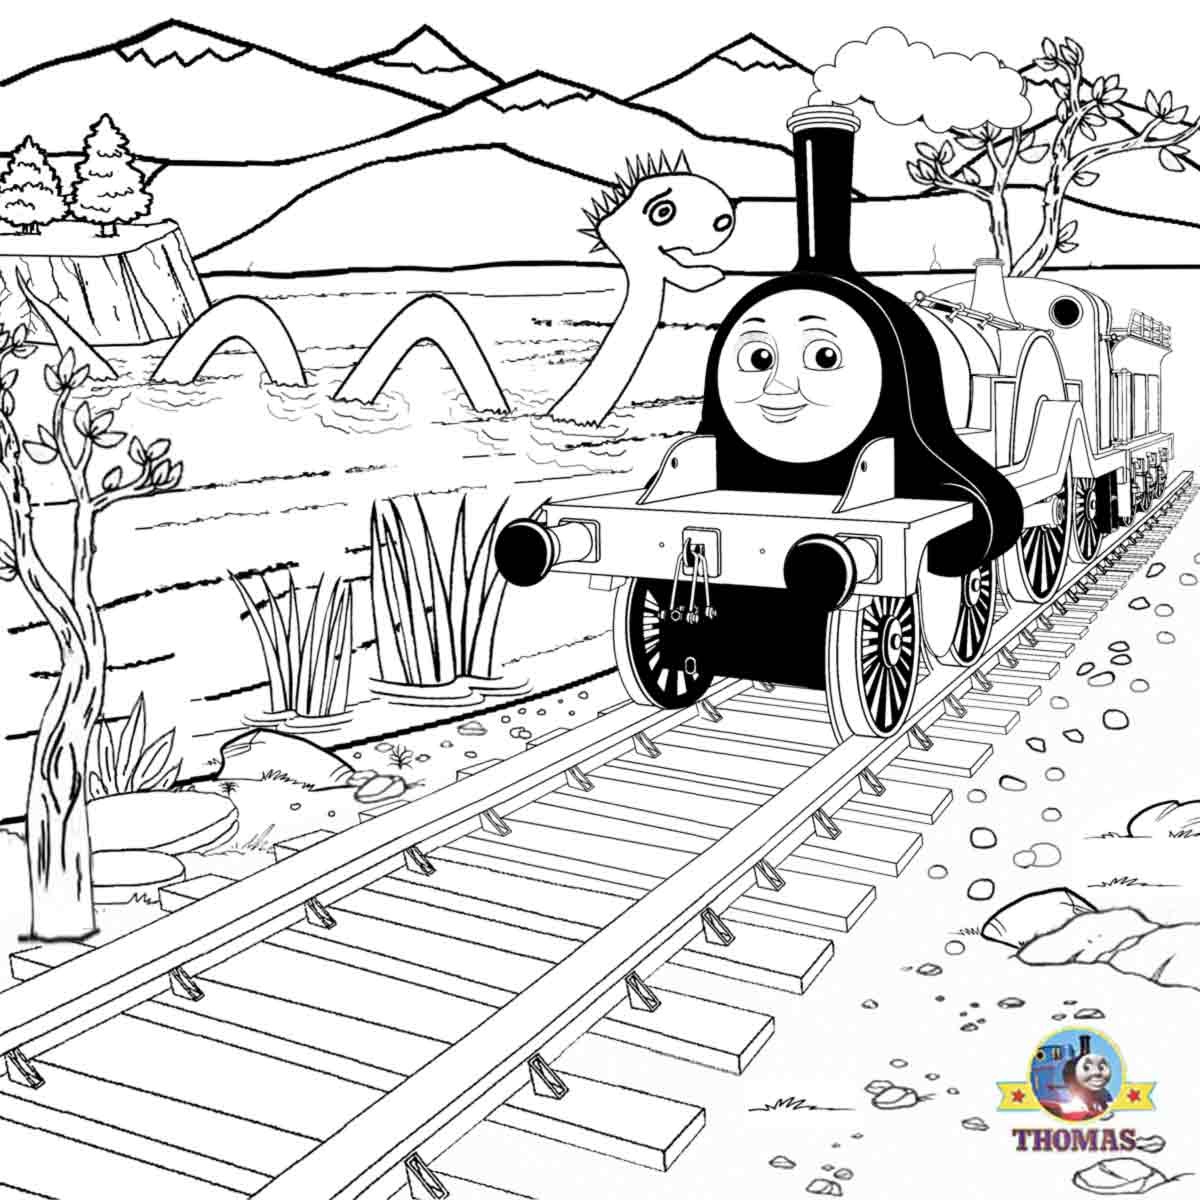 thomas and friends drawing pages thomas and friends very interesting thomas coloring page thomas and pages friends drawing